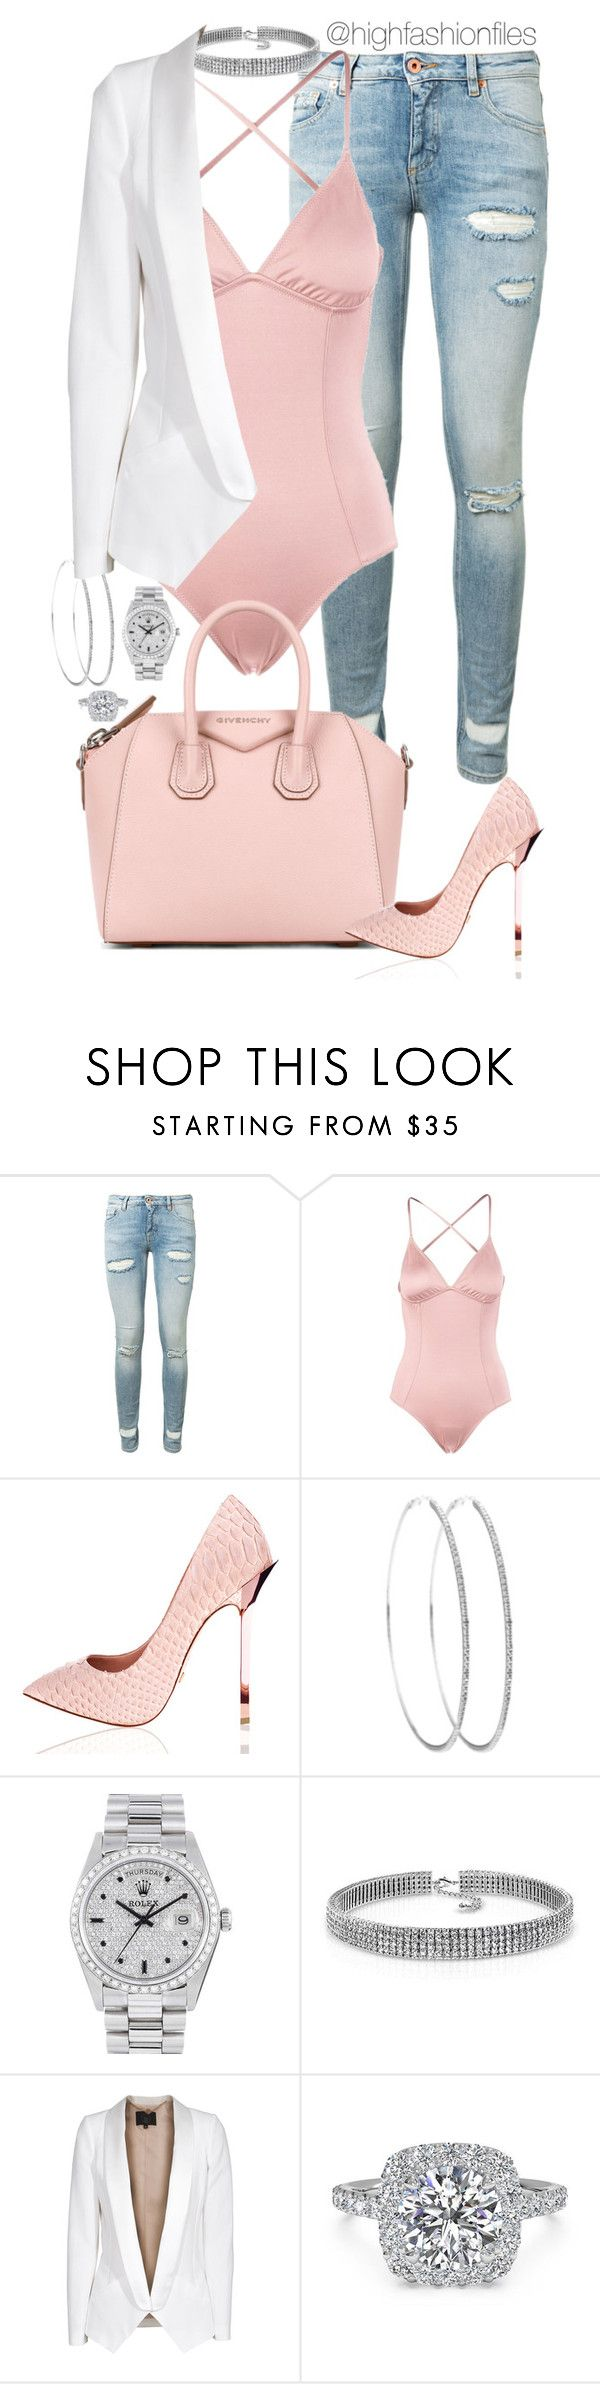 """""""Spoiled"""" by highfashionfiles ❤ liked on Polyvore featuring Off-White, Eberjey, Givenchy, Rolex, Bling Jewelry, SLY 010 and Ritani"""